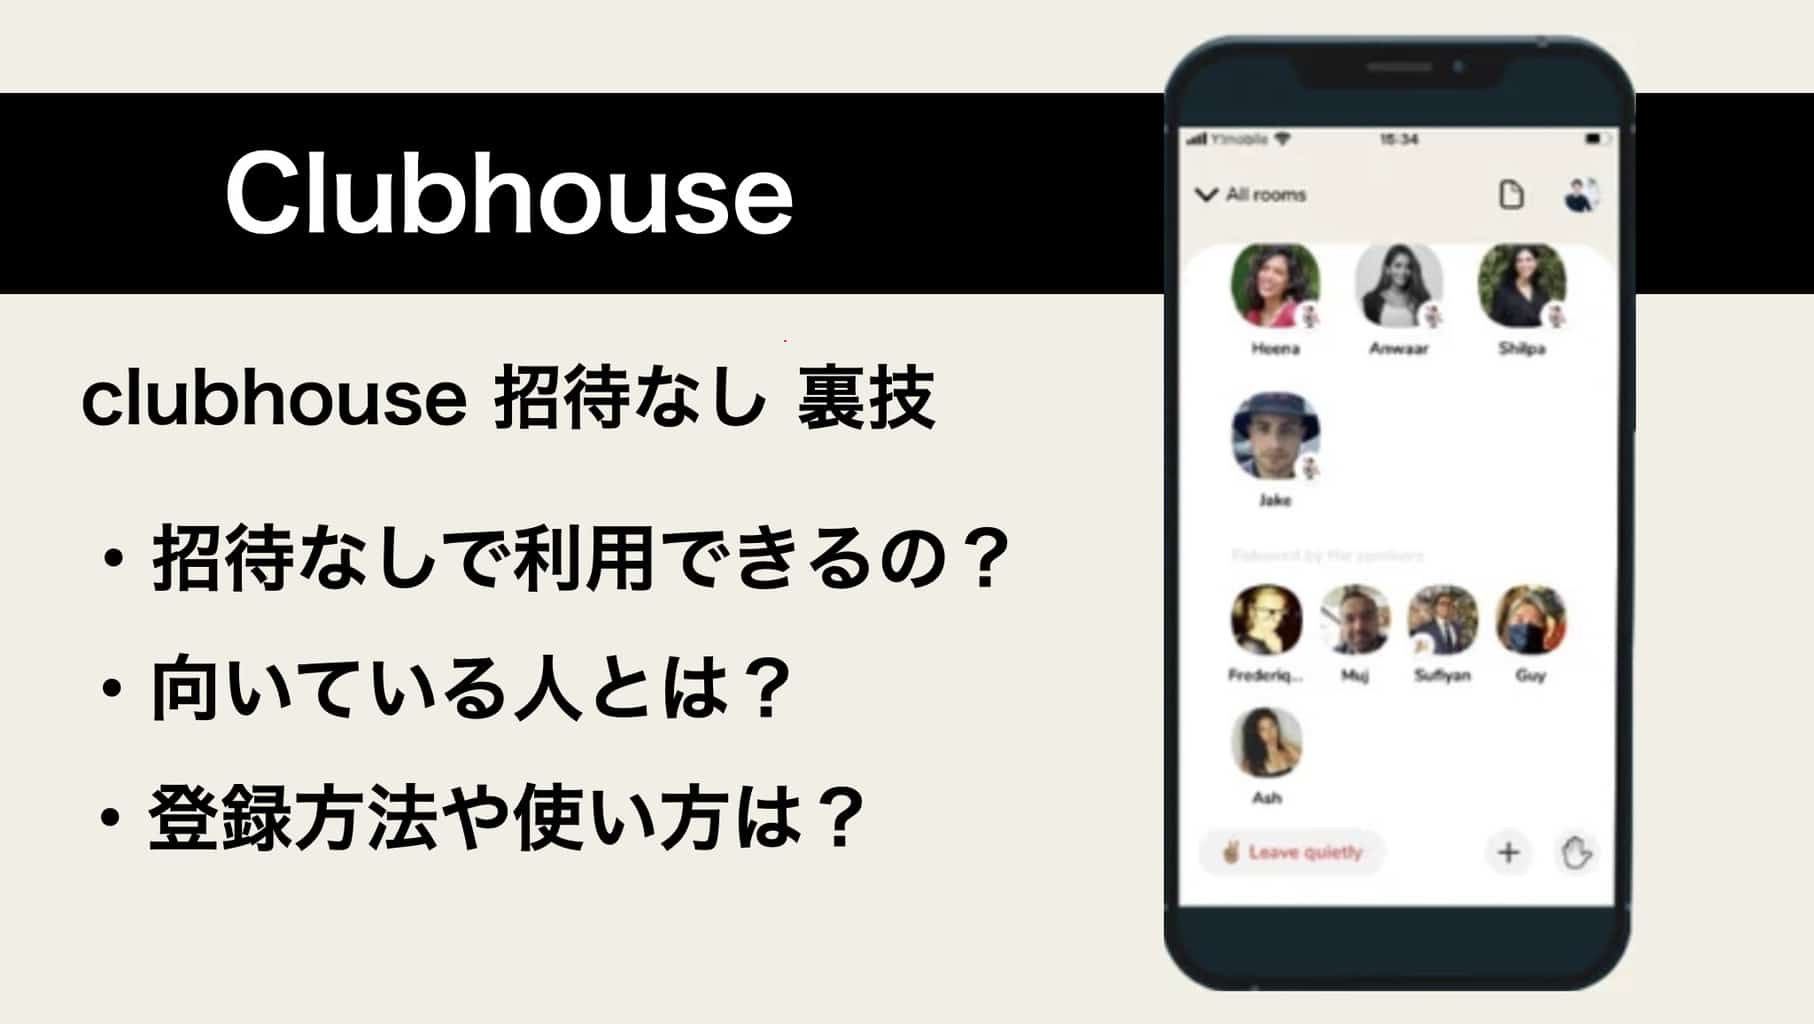 clubhouse 招待なし 裏技